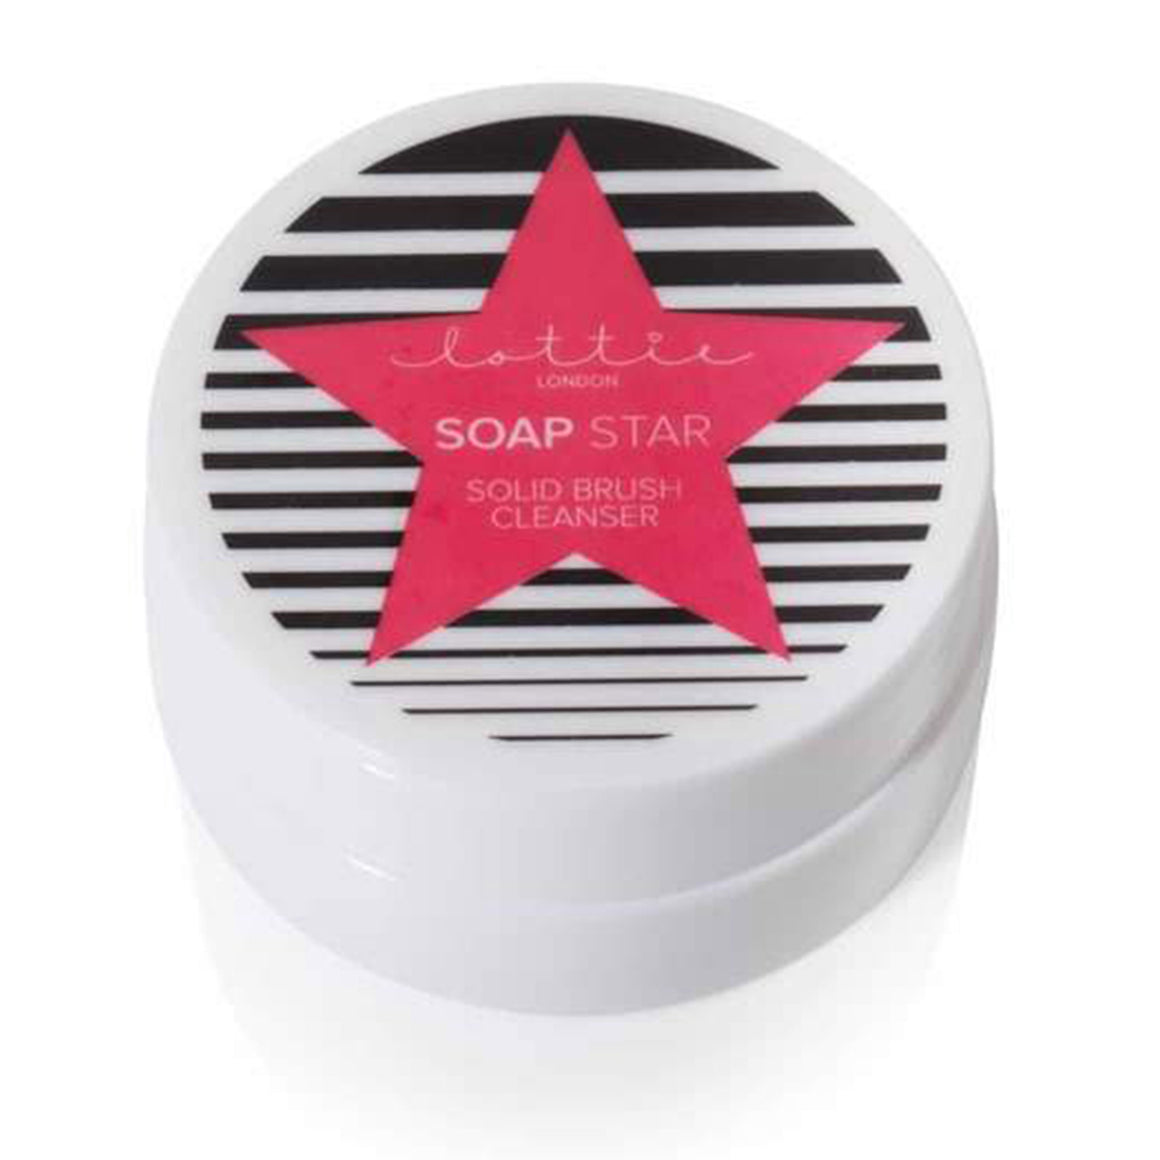 Lottie London - Soap Star Solid Brush Cleanser 30 g